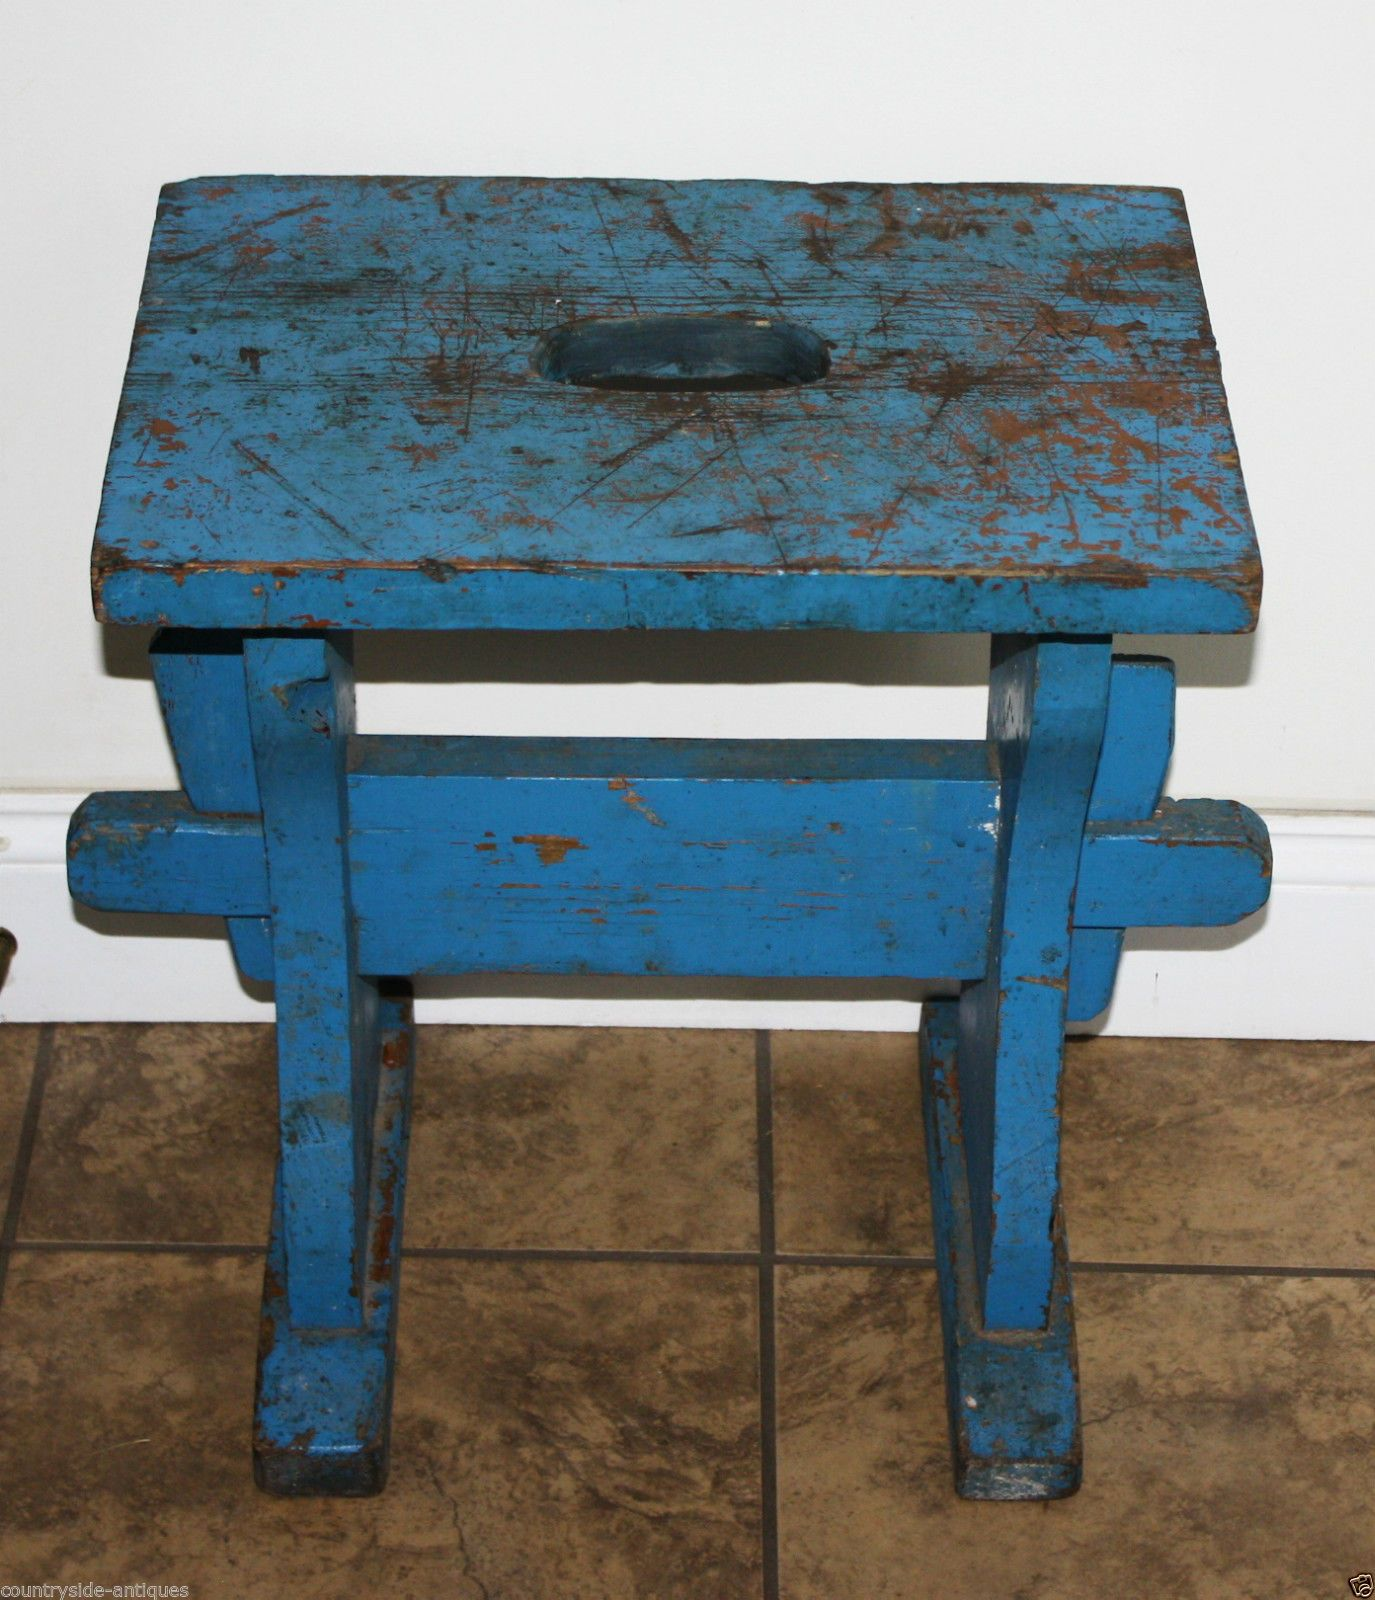 Antique Country Primitive Small Wooden Bench Old Blue